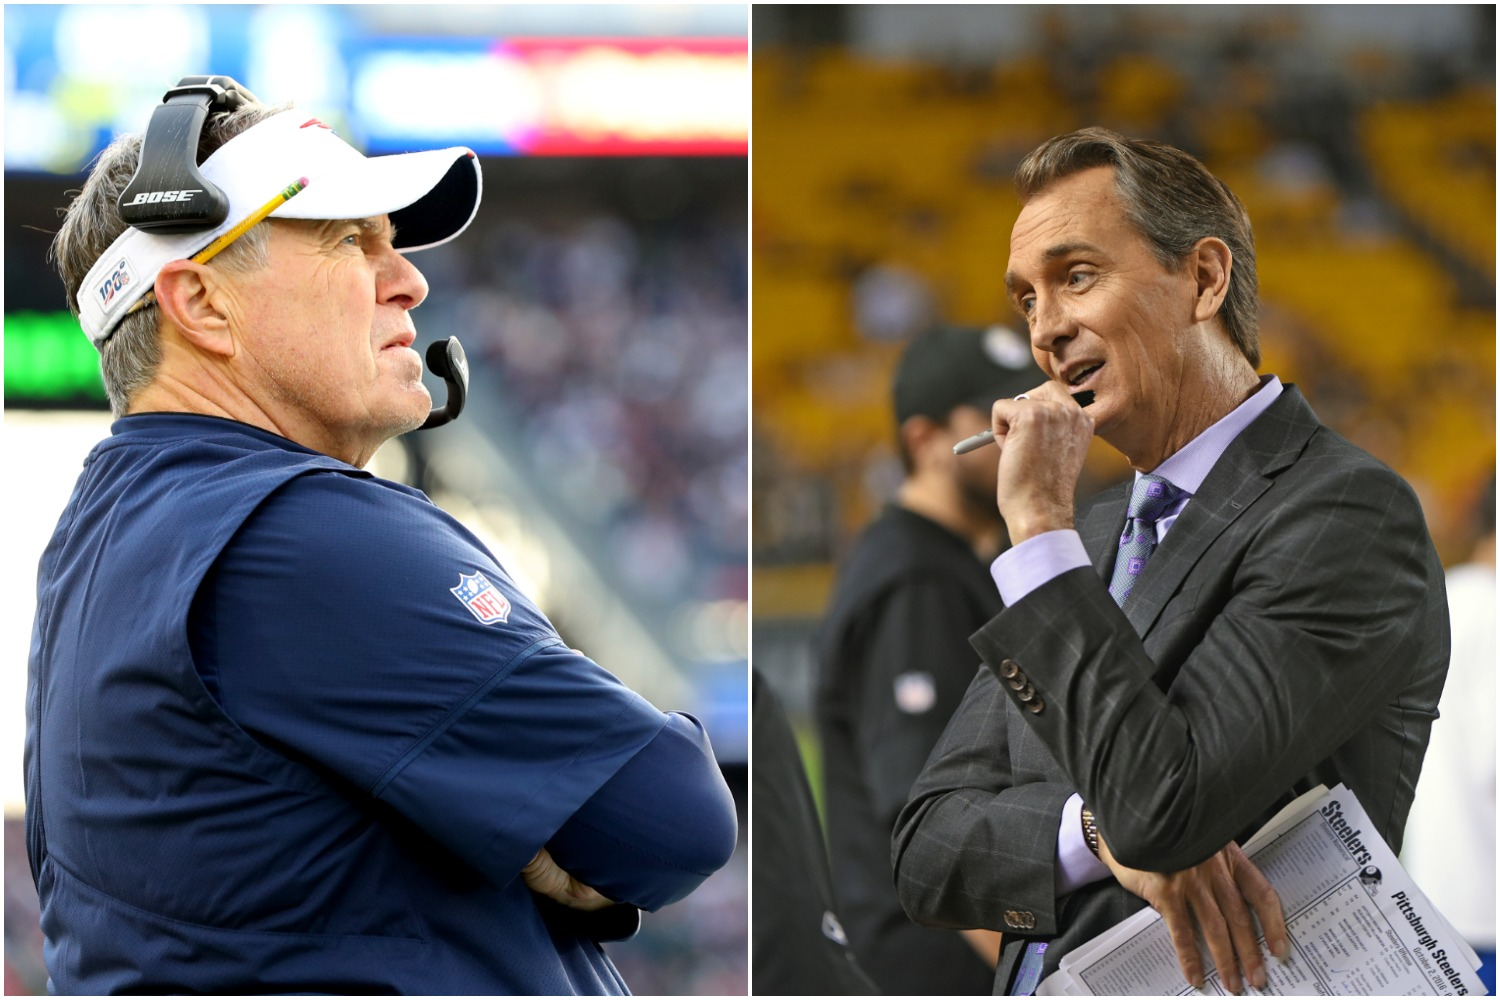 Cris Collinsworth has a star quarterback in mind who he believes would be an ideal fit for Bill Belichick and the New England Patriots.